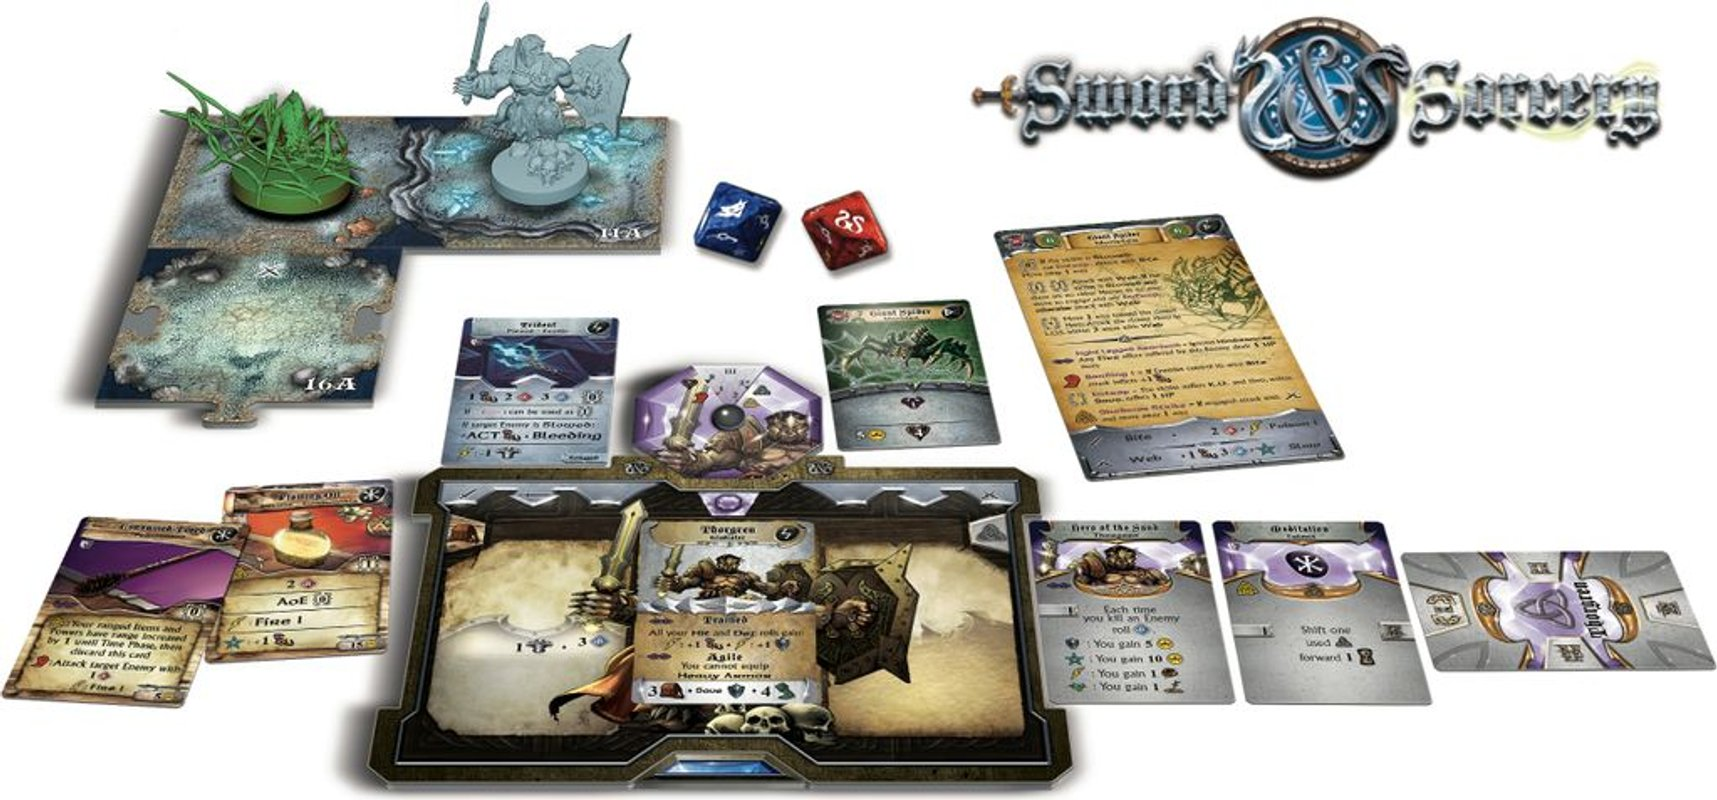 Sword & Sorcery: Ancient Chronicles components